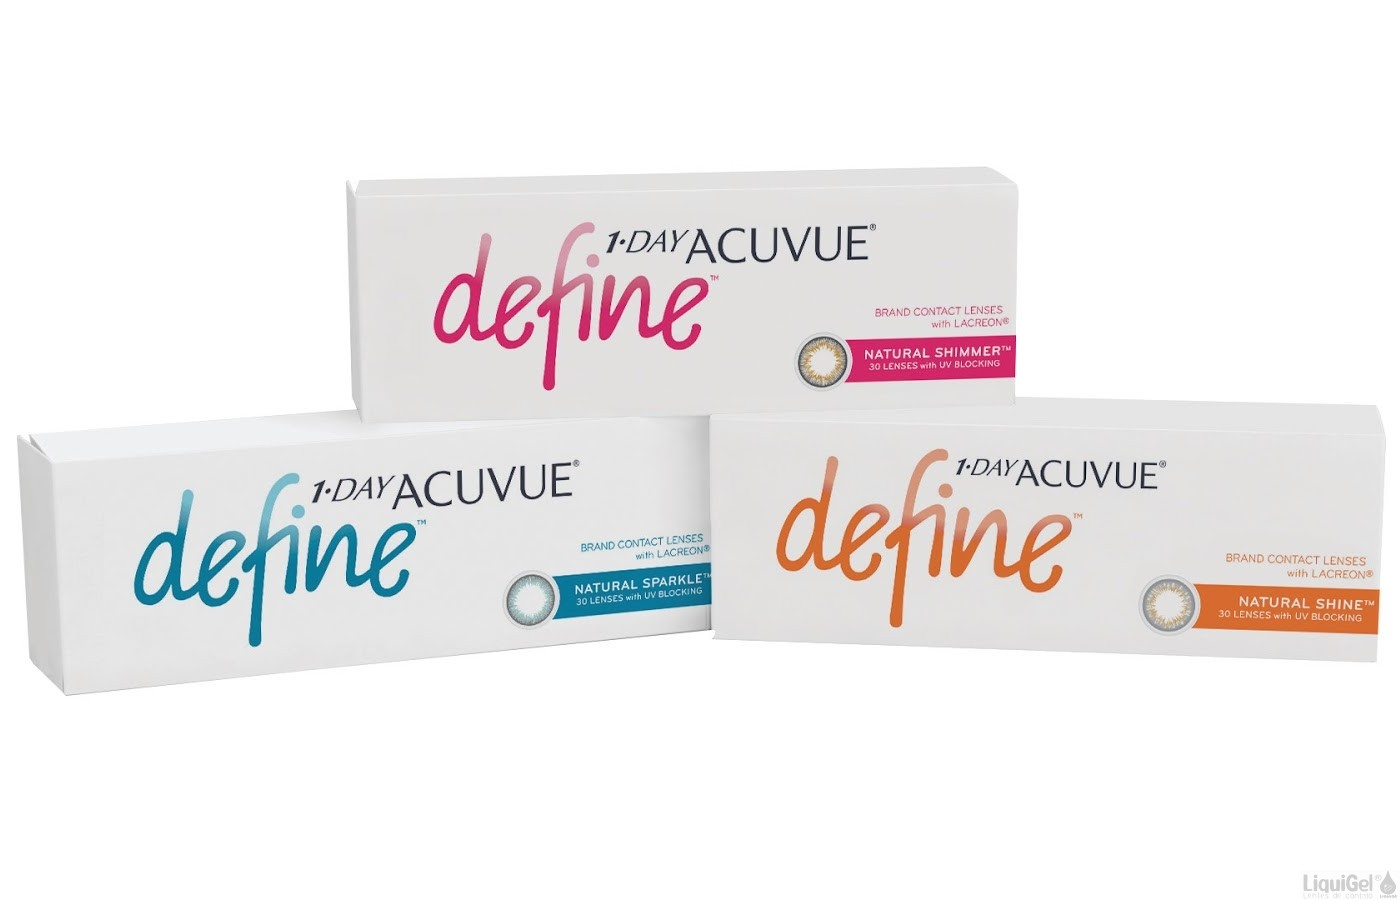 1 DAY ACUVUE® DEFINE - cód. 90